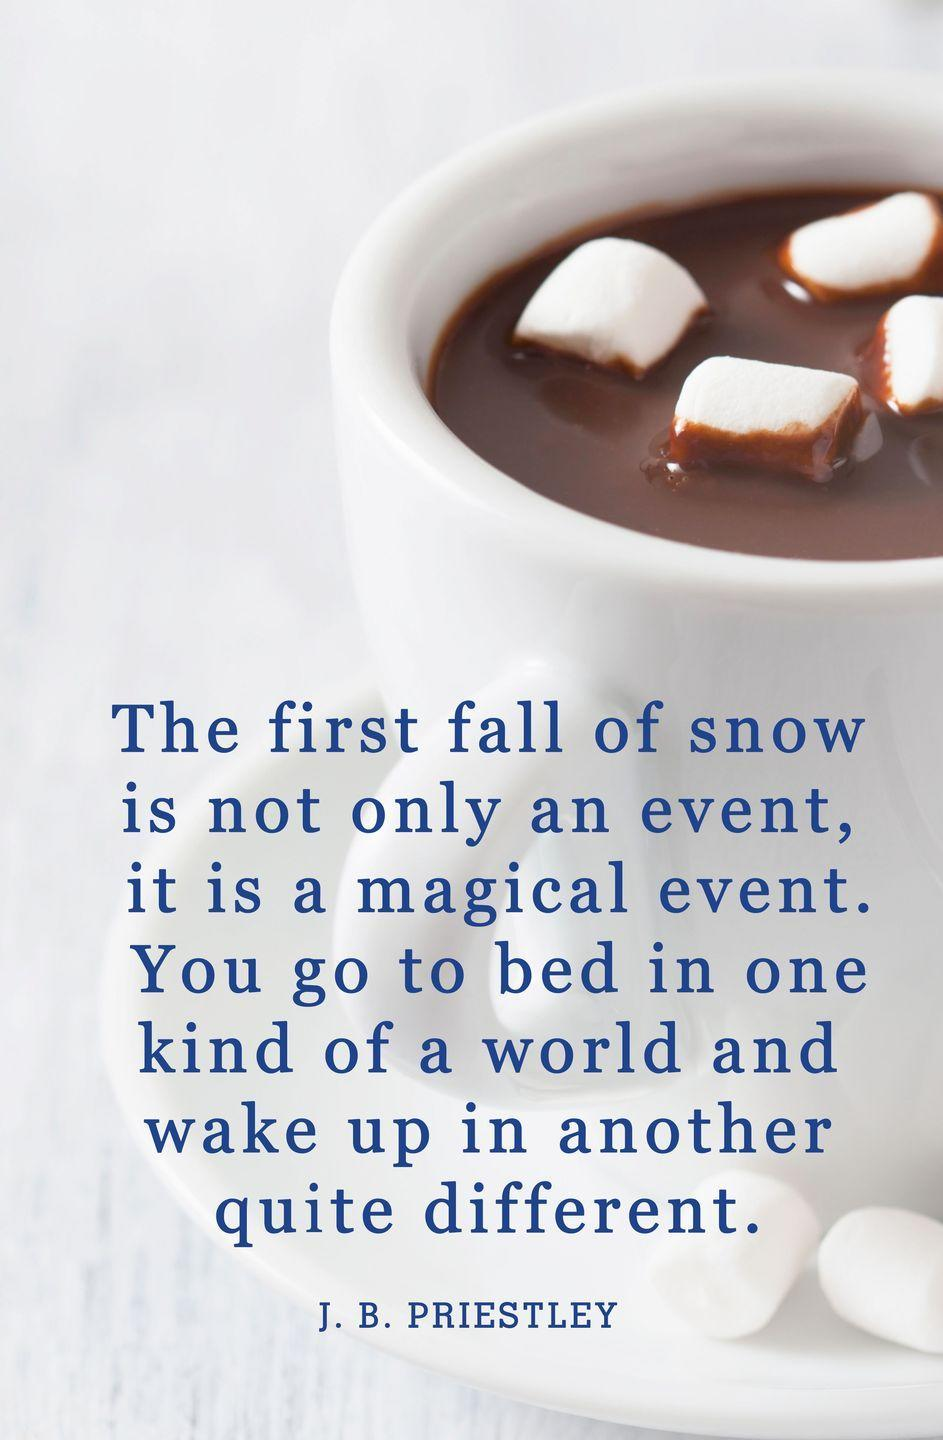 "<p>""The first fall of snow is not only an event, it is a magical event. You go to bed in one kind of a world and wake up in another quite different.""</p>"